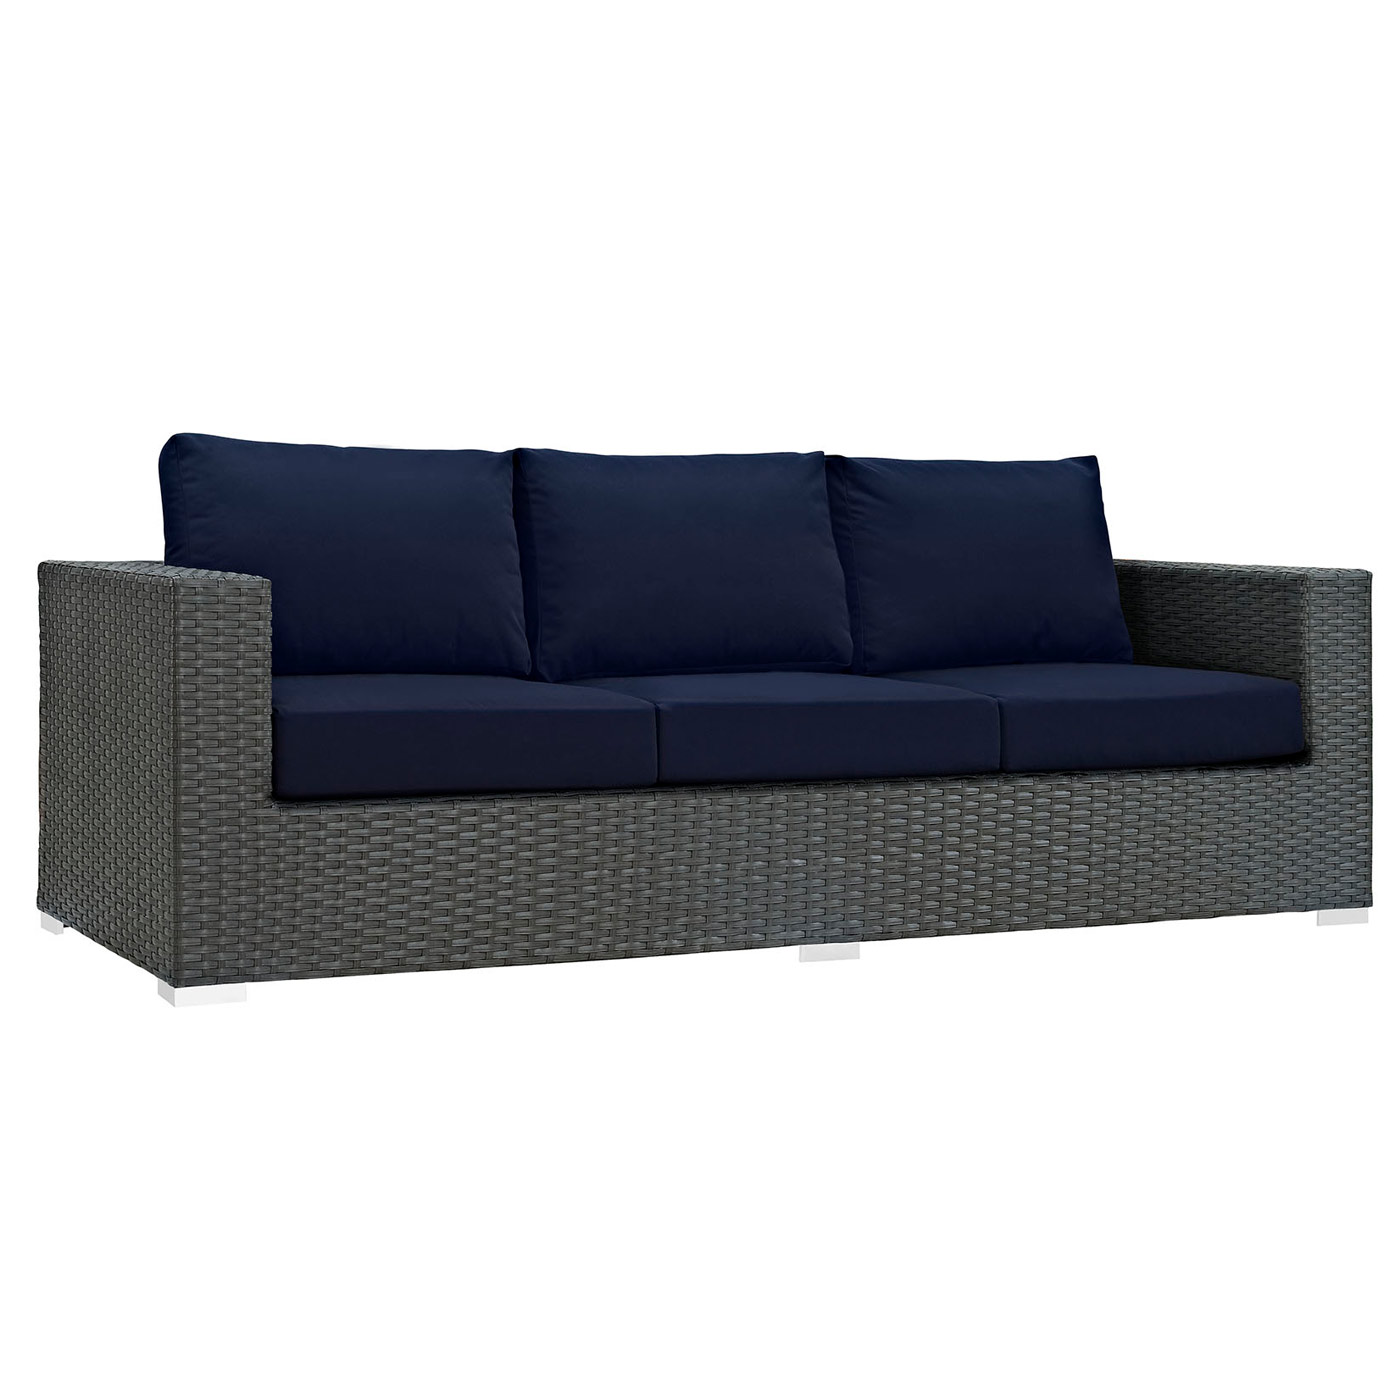 Modway Sojourn Outdoor Patio Sofa with Cushion ... - Modway Sojourn Outdoor Patio Sofa With Cushion FREE SHIPPING